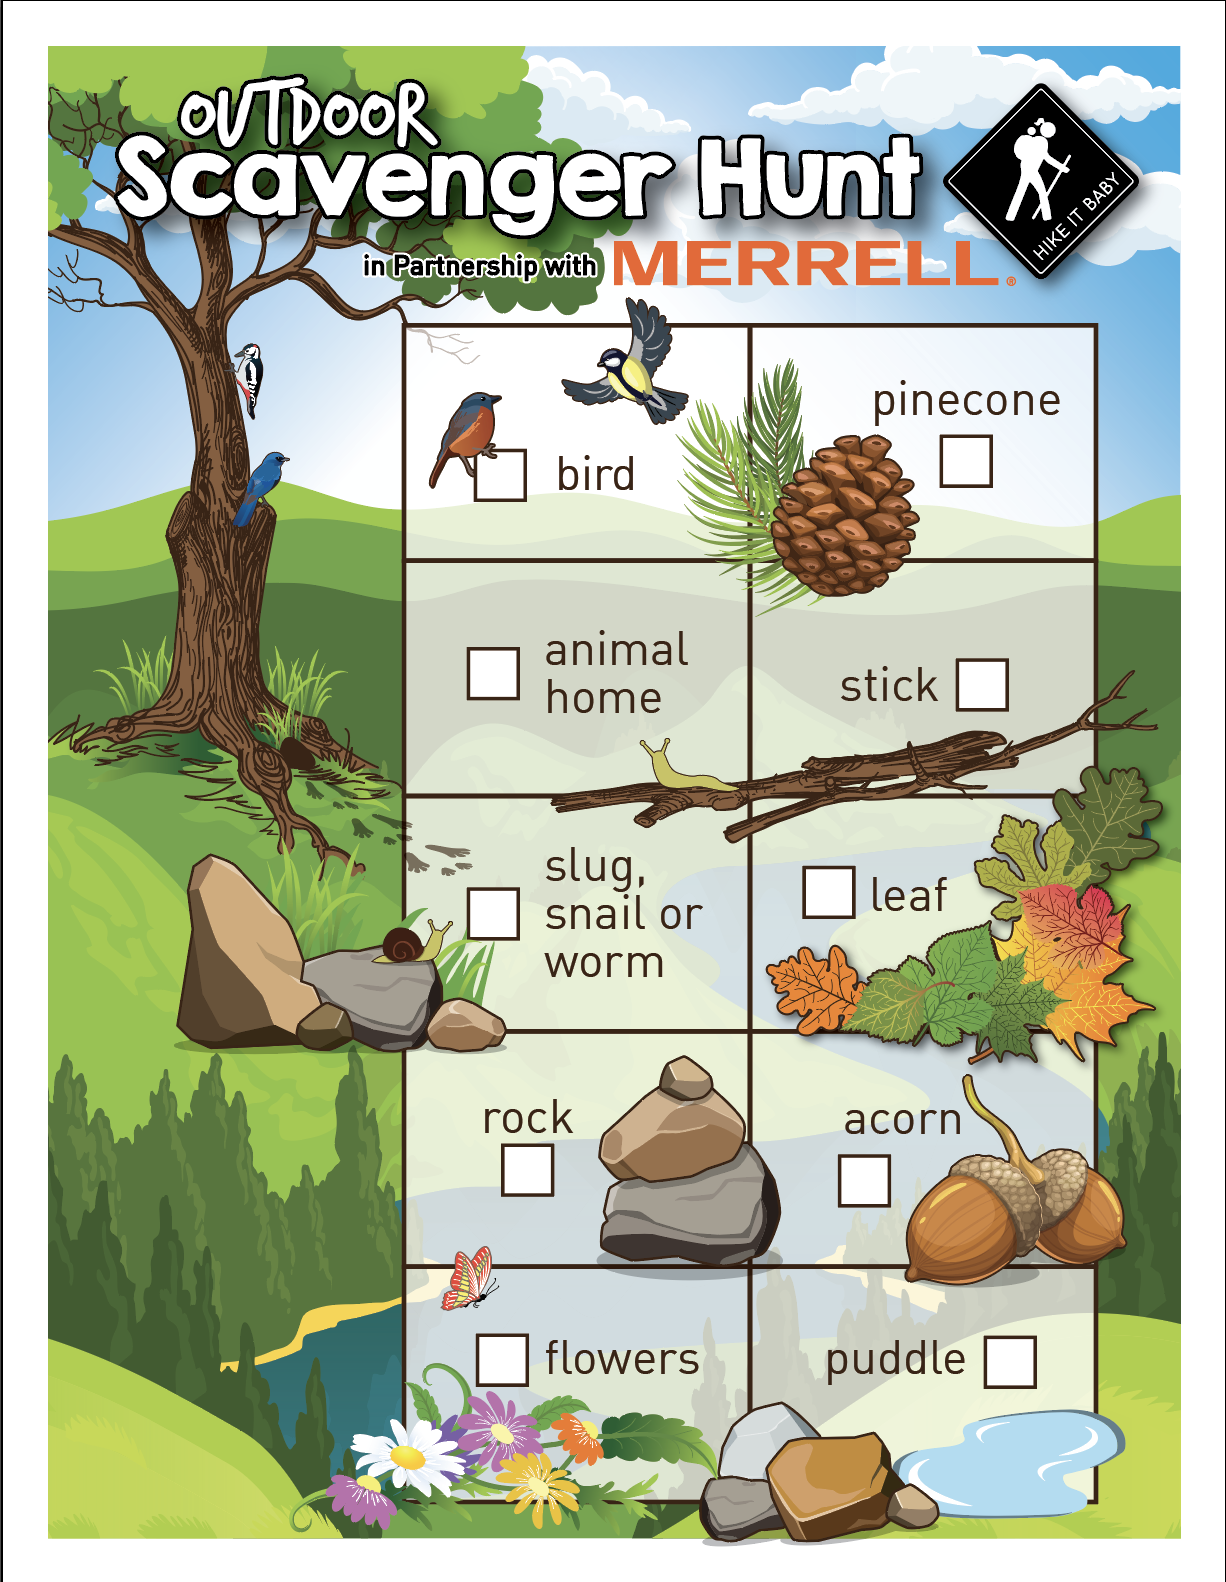 Toddler Scavenger Hunt sponsored by Merrell activity sheet download